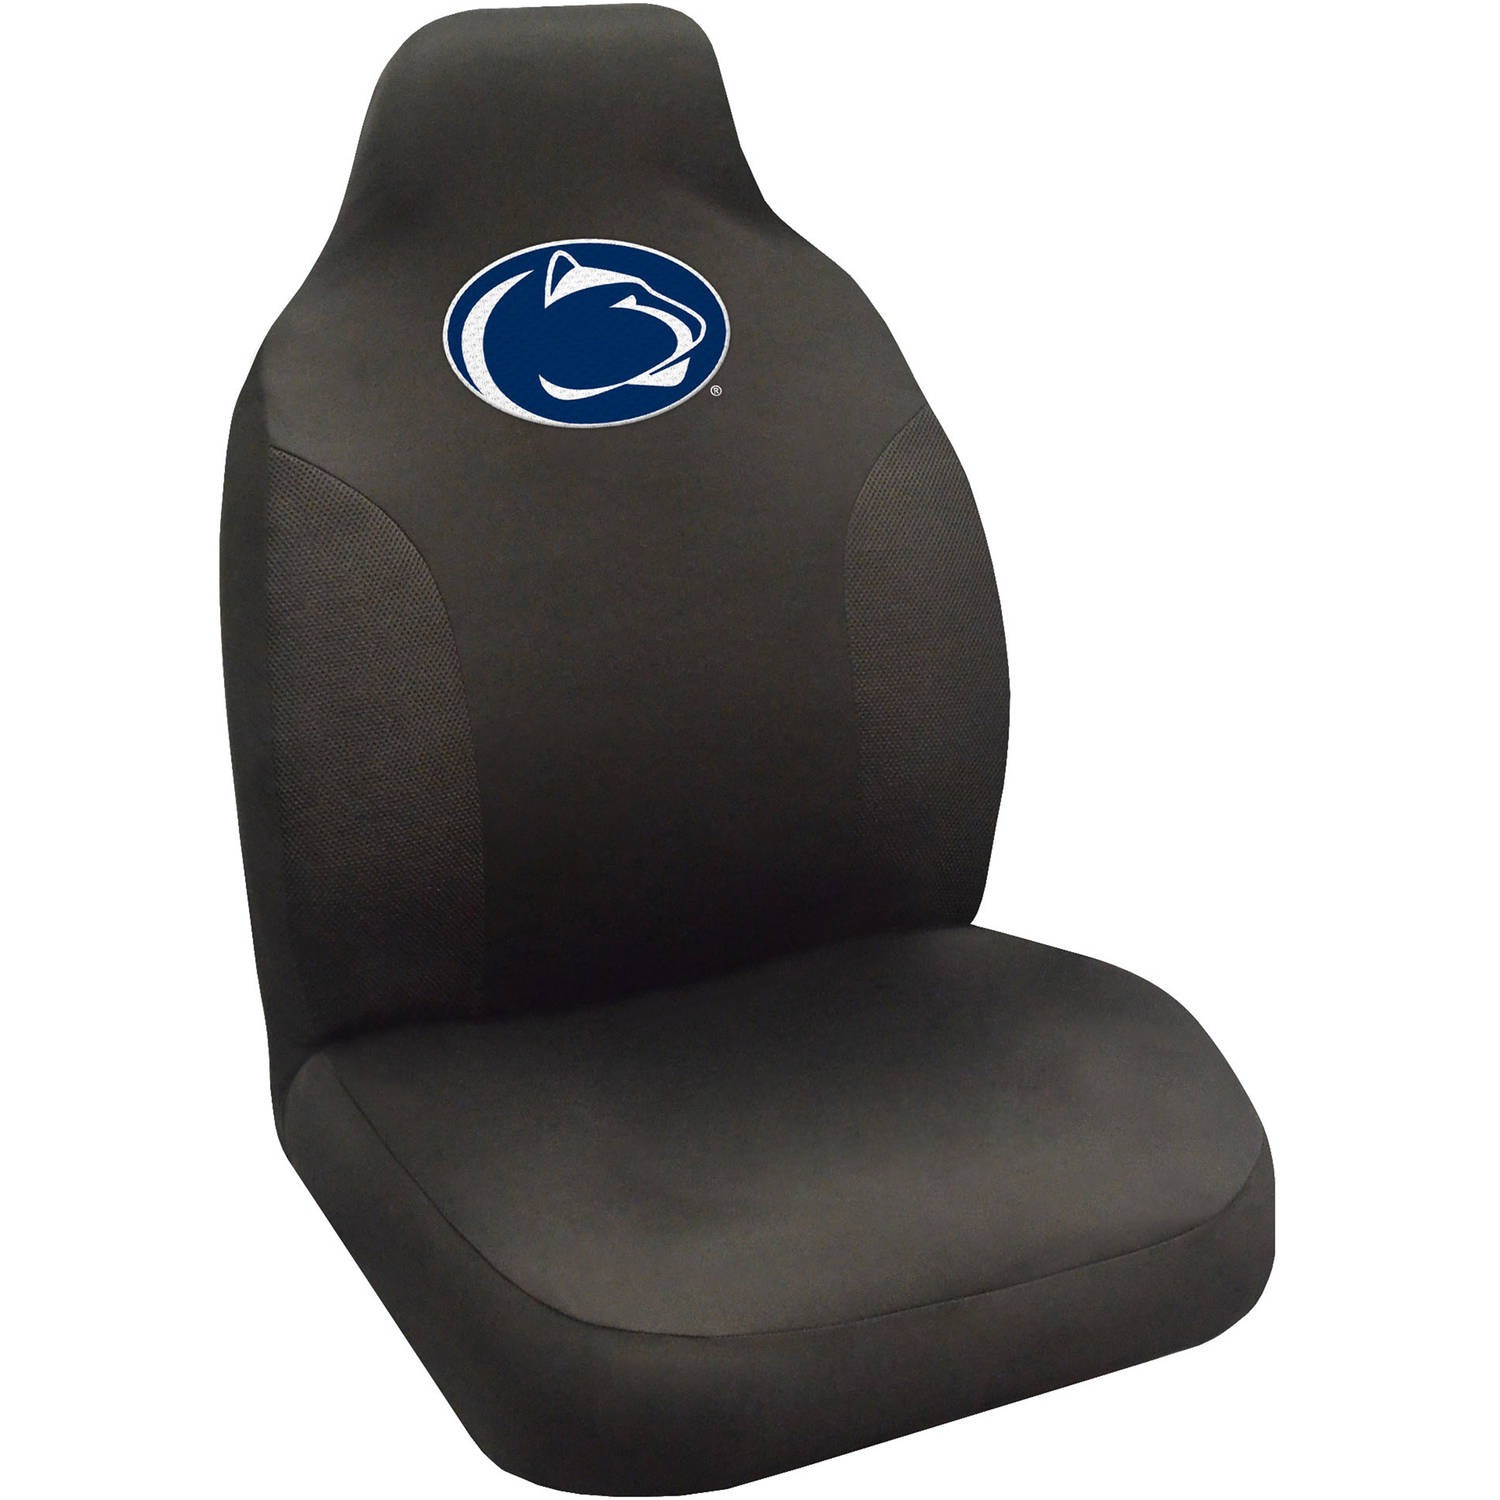 Penn State Seat Covers